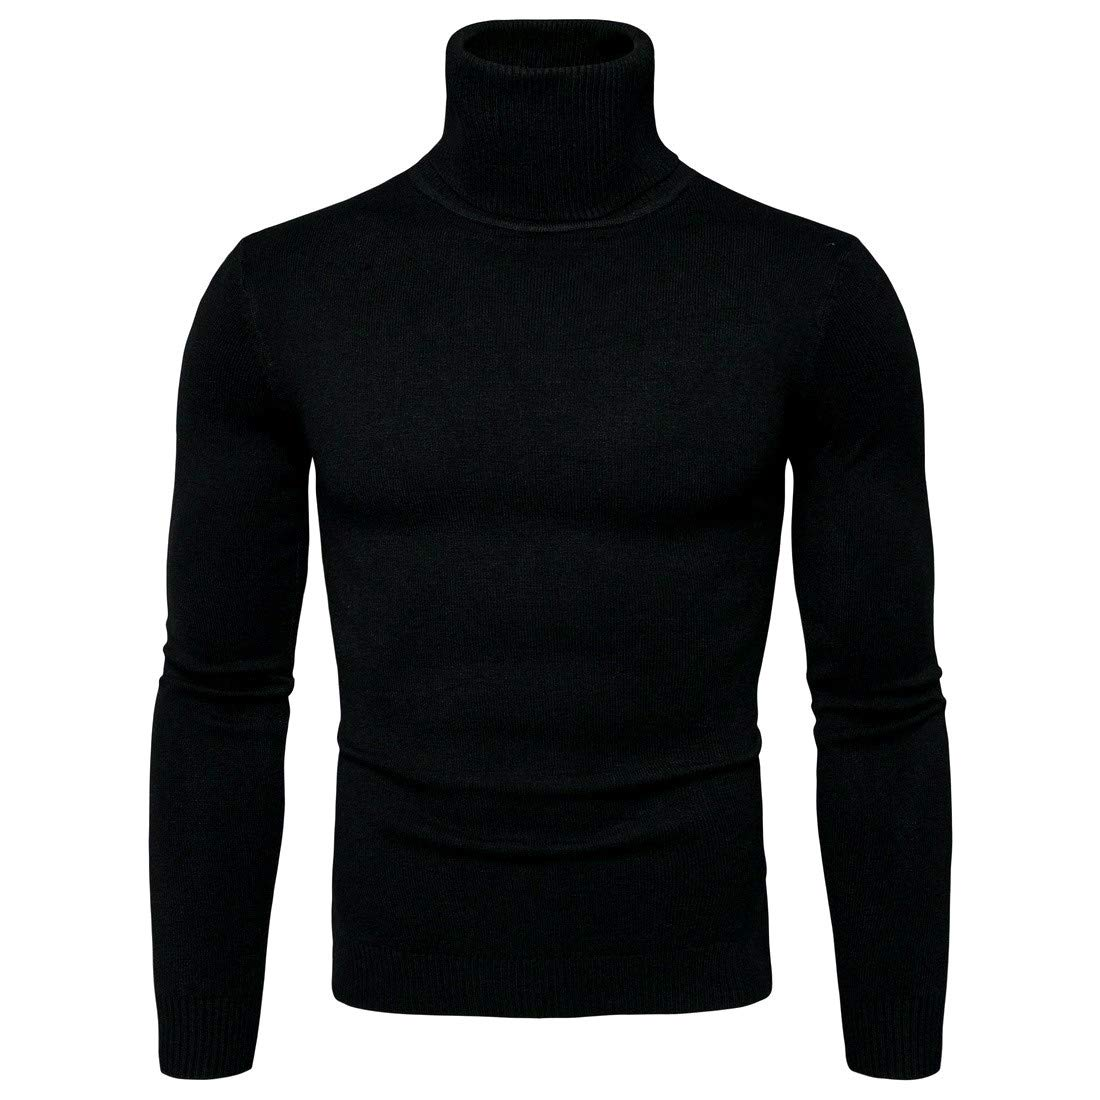 YUNY Mens Pullover Winter Knitting Turtleneck Pullover Sweater Black L